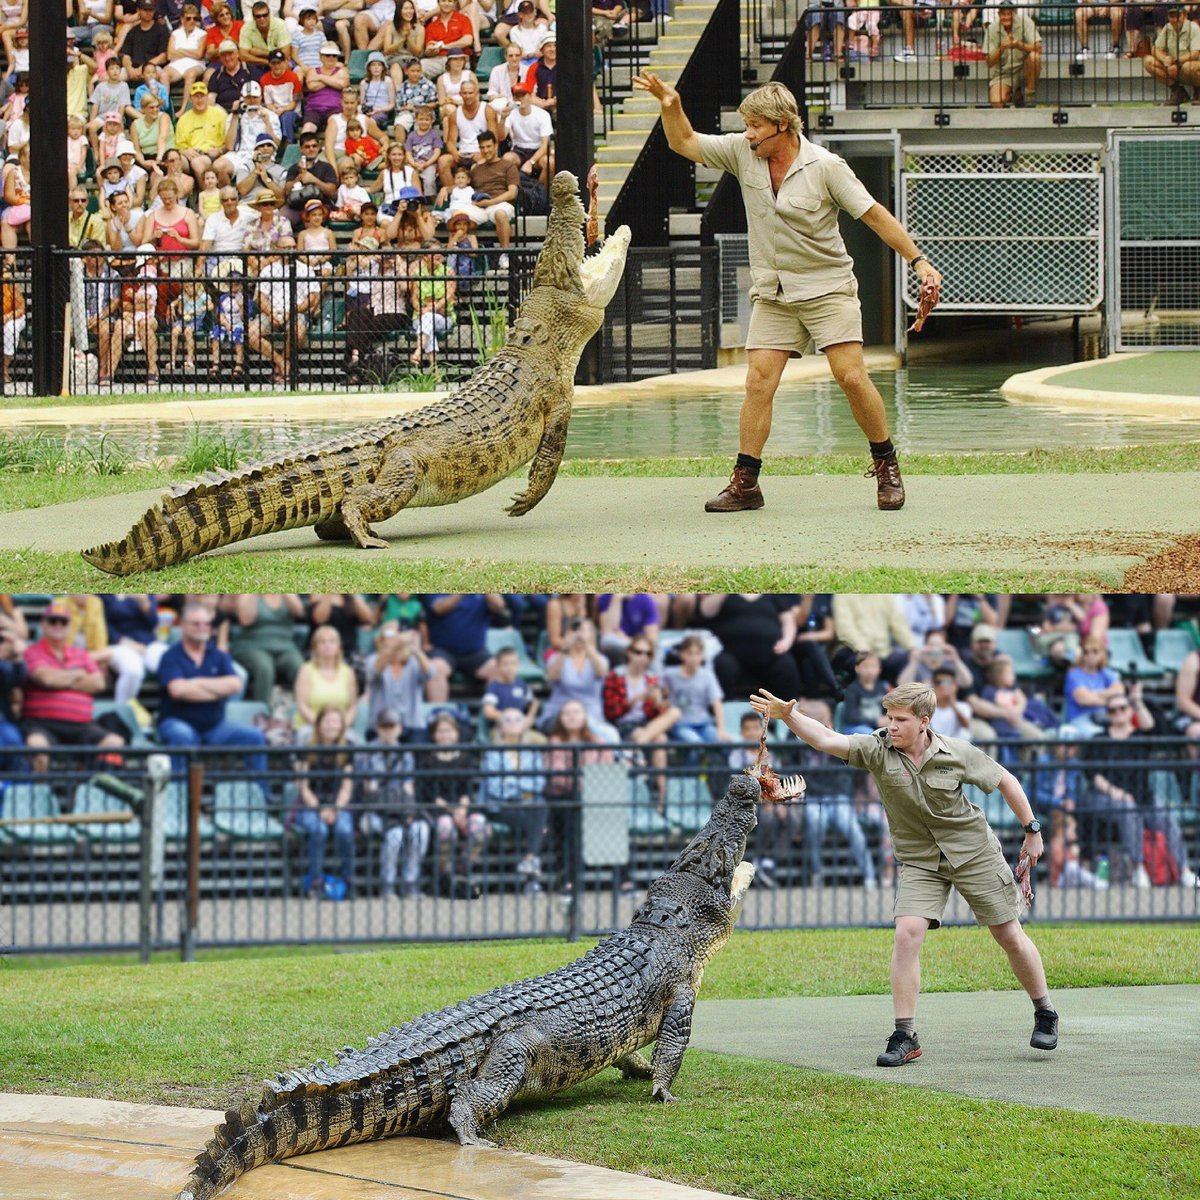 Robert Irwin reproduces photo of his dad feeding same crocodile 15-years ago